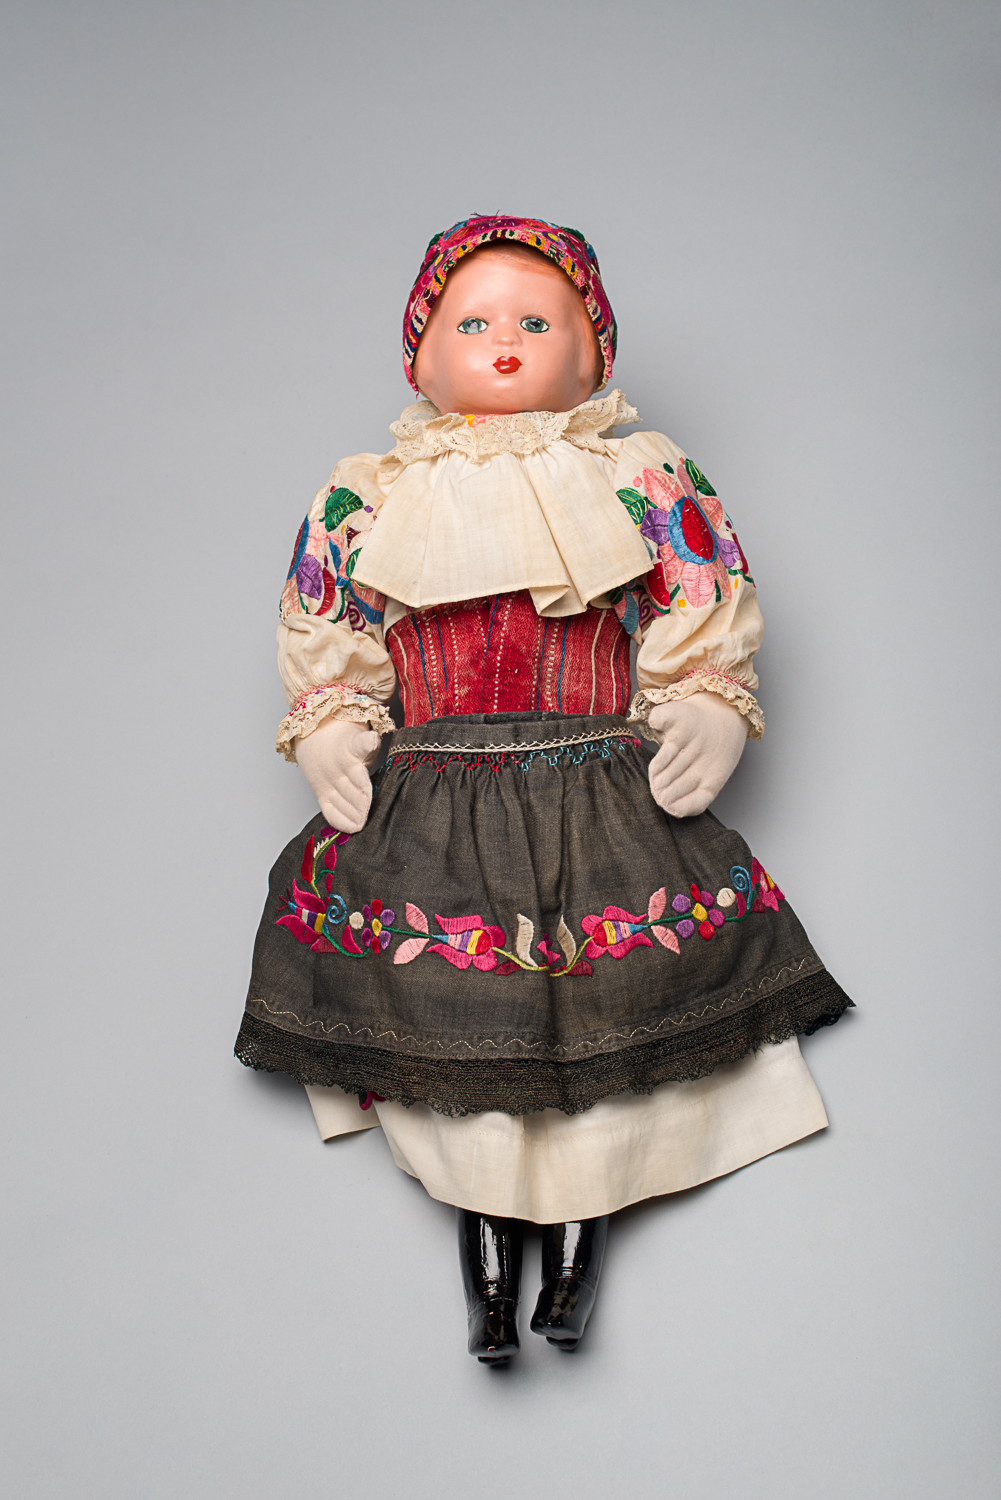 Daisy received the doll when she was two years old and named her Tonicska. (Photo: Peter Berra)